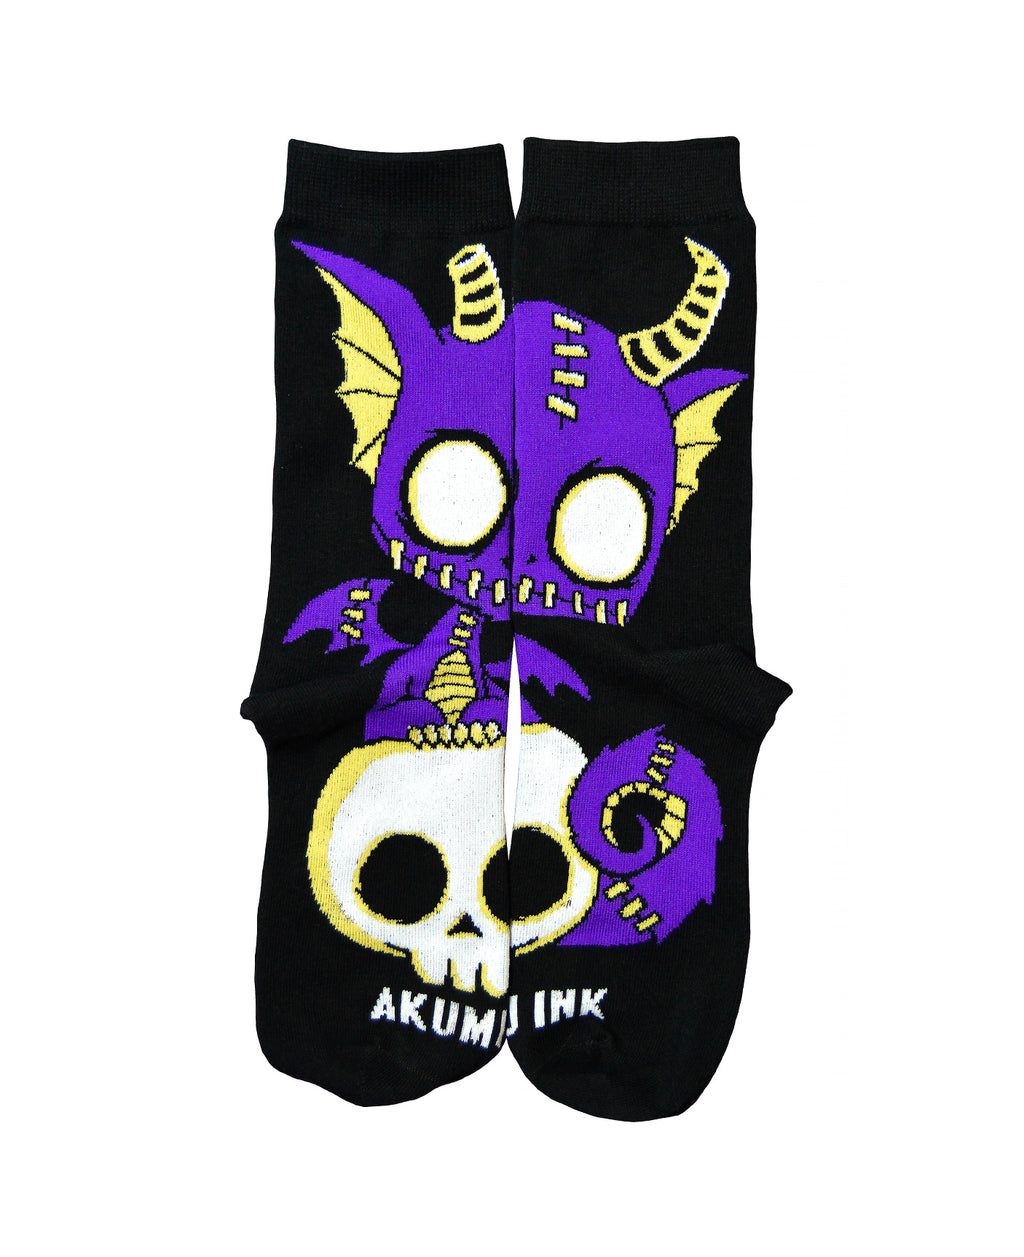 Akumu Ink Immortal Companion Unisex Socks, Accessories, Akumu ink, goth, emo